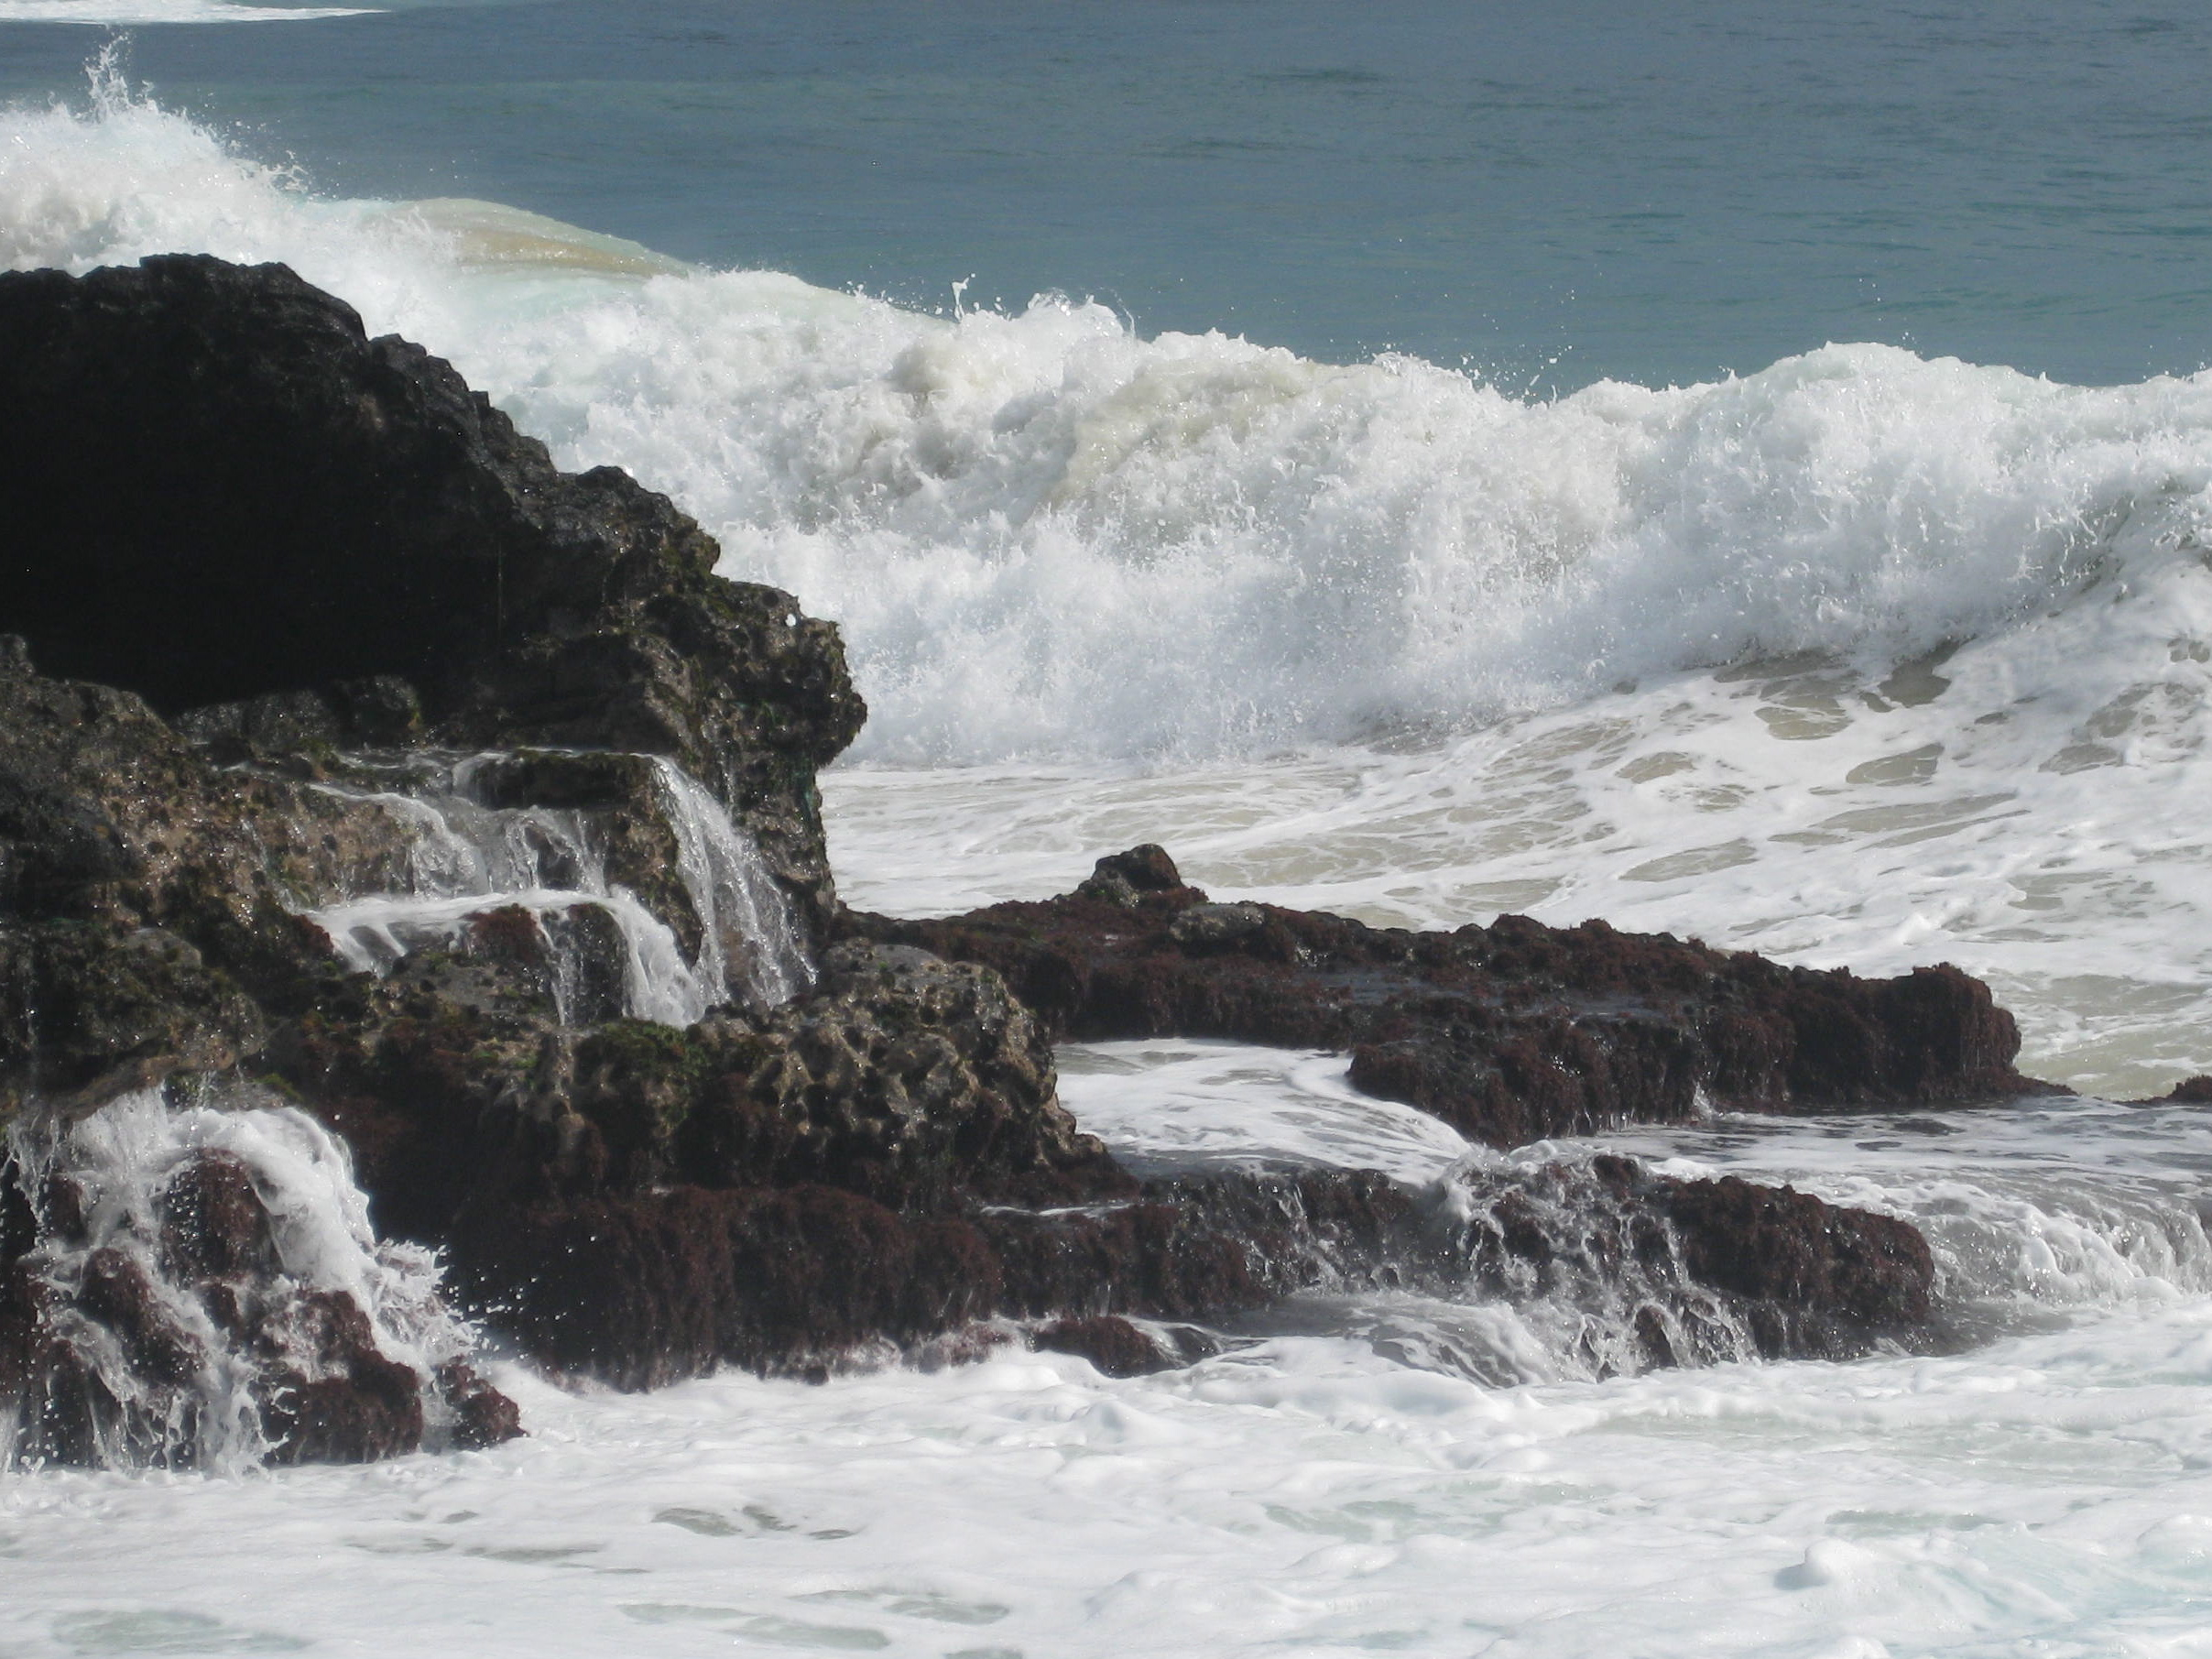 Kauai Beach Waves 3